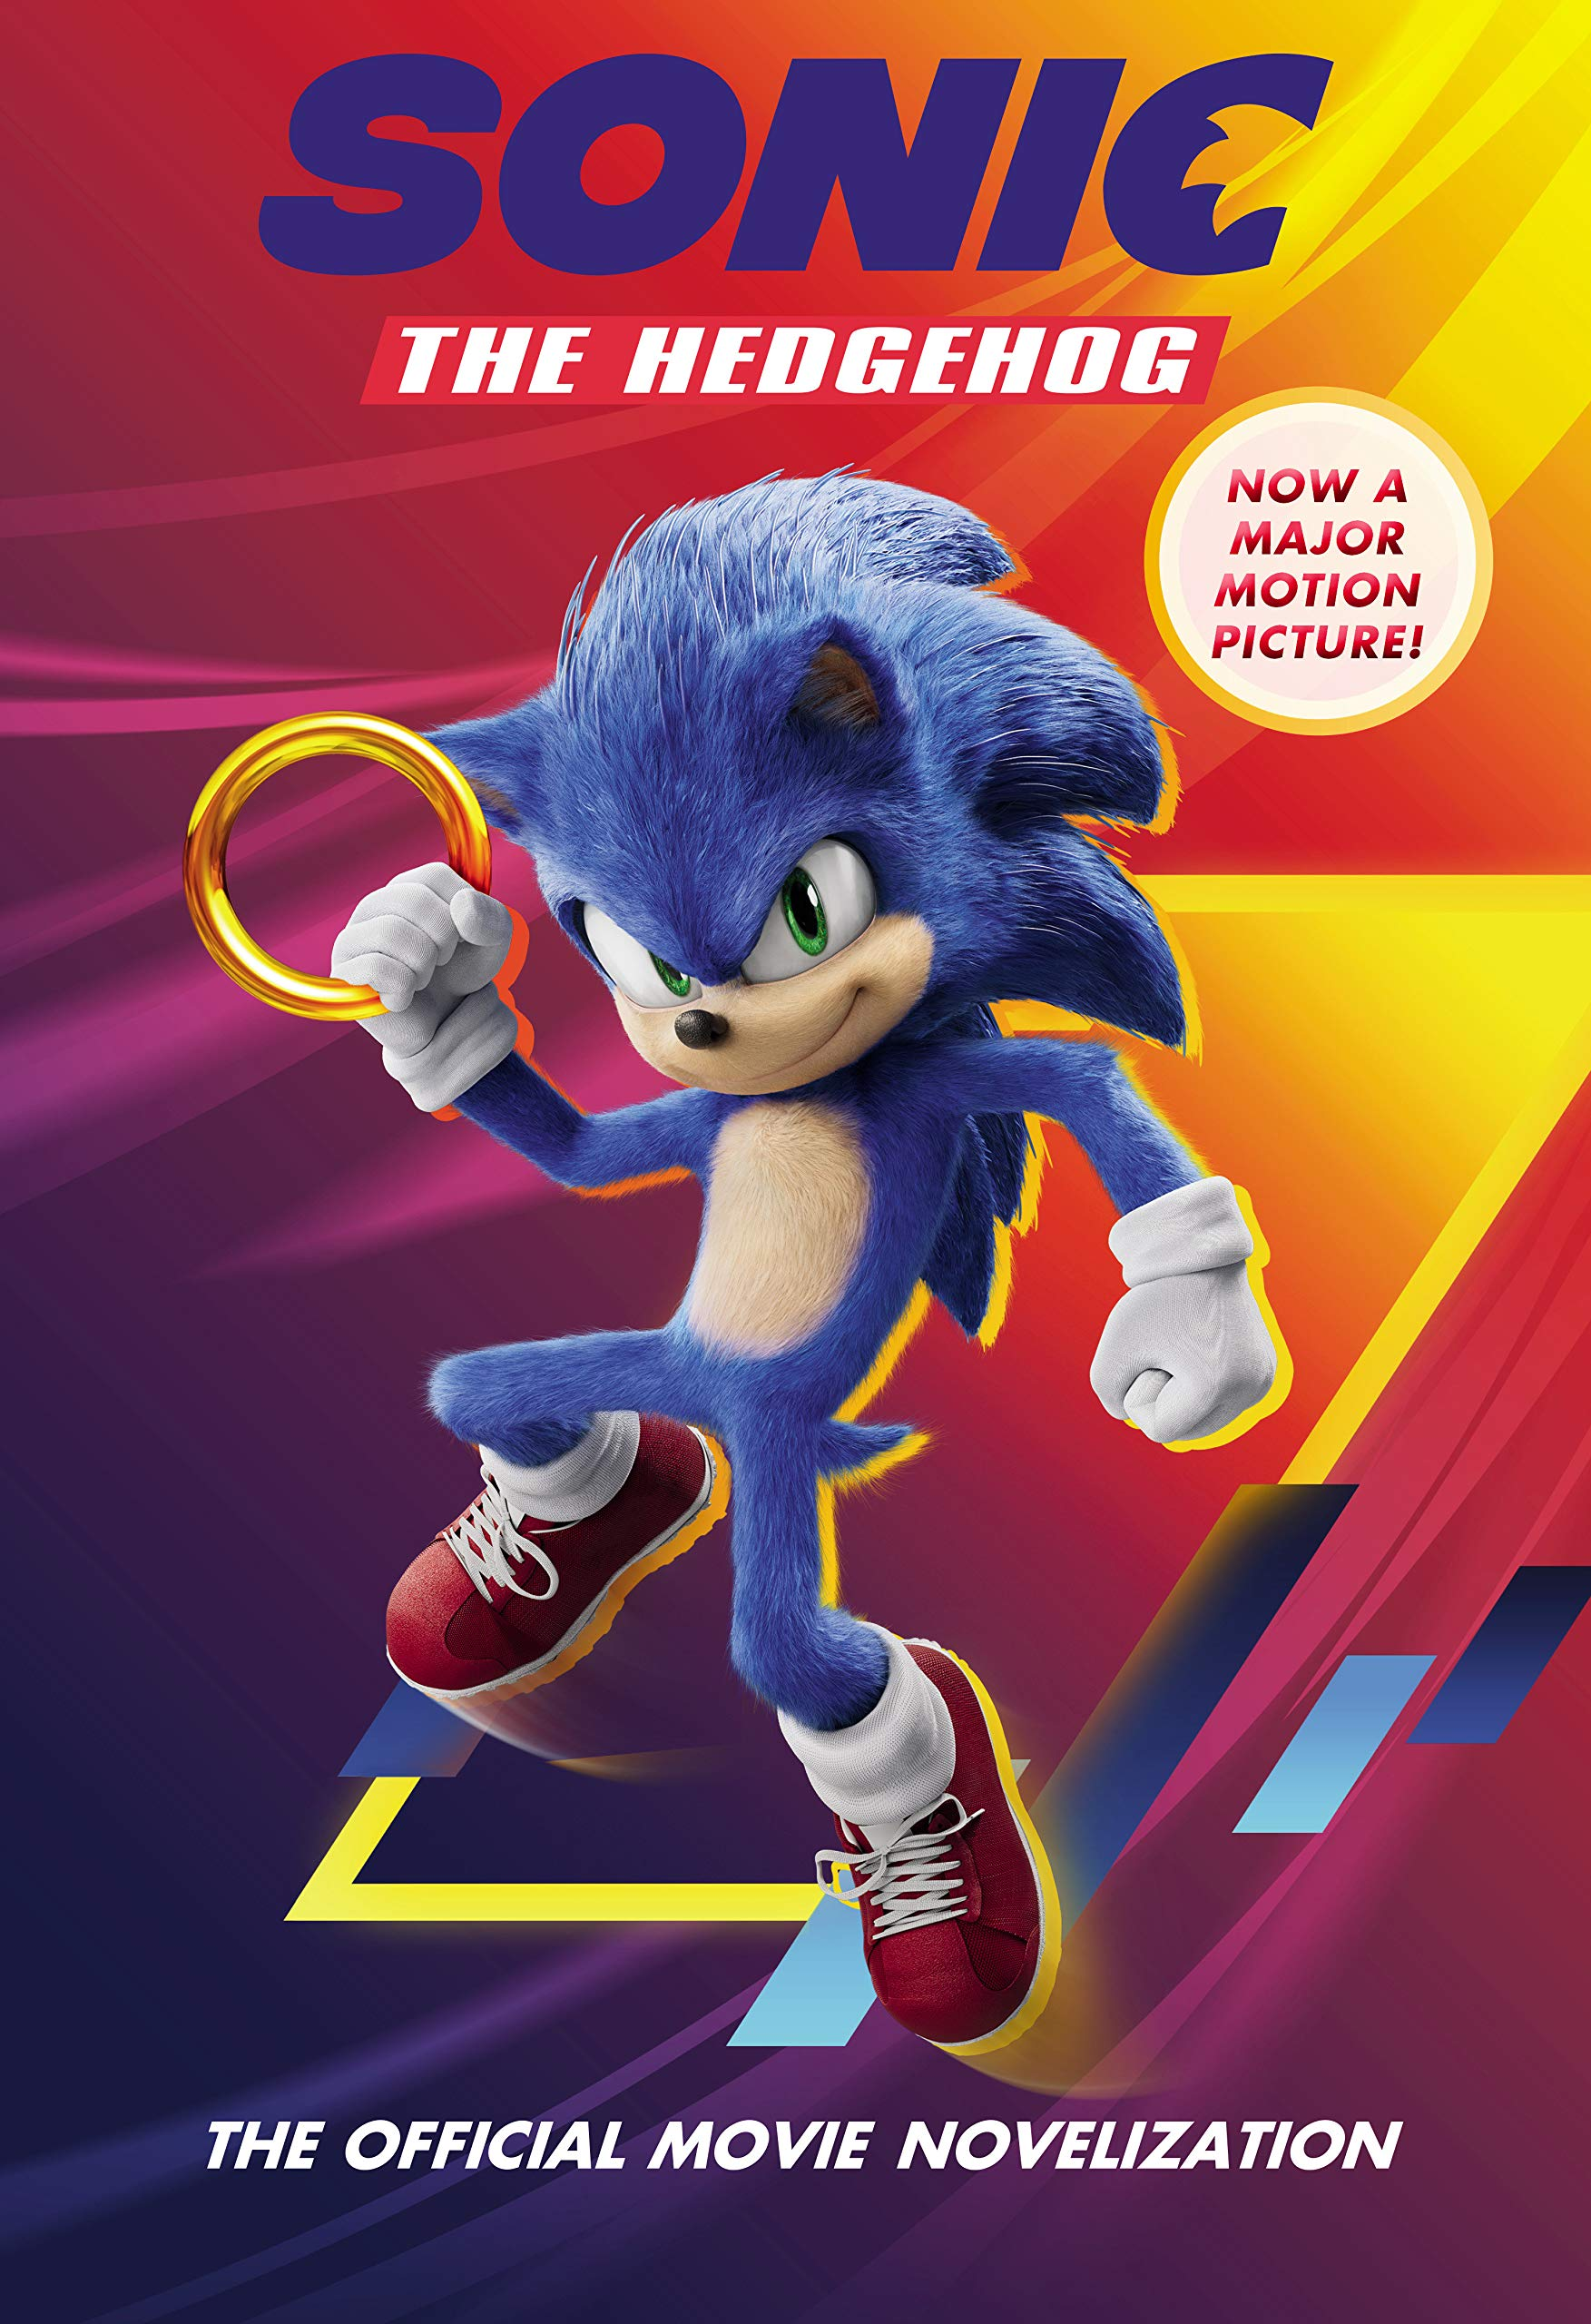 Sonic The Hedgehog The Official Movie Novelization Phegley Kiel 9780593093016 Amazon Com Books